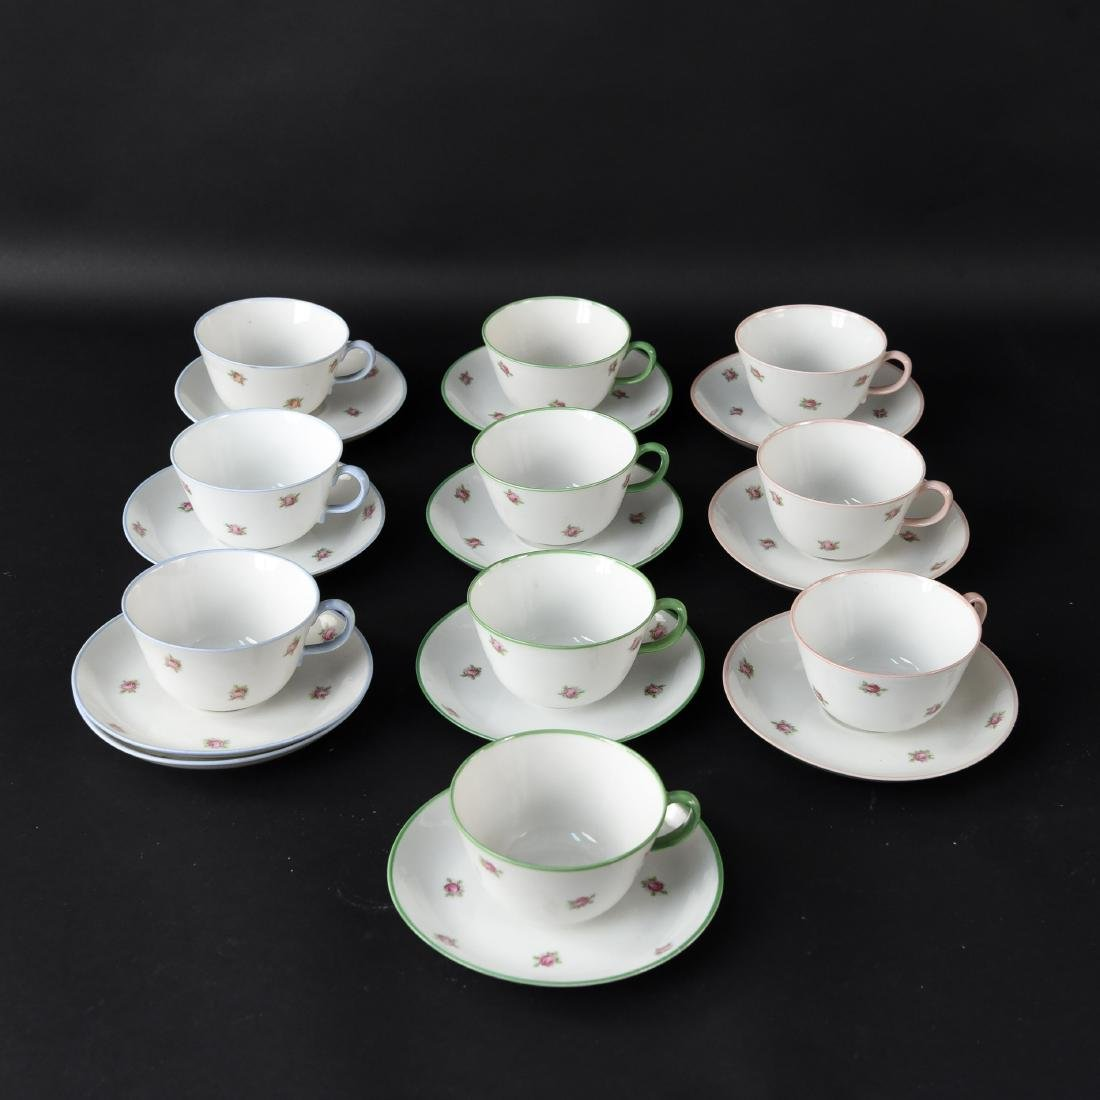 RICHARD GINORI PORCELAIN TEACHIPS & SAUCERS